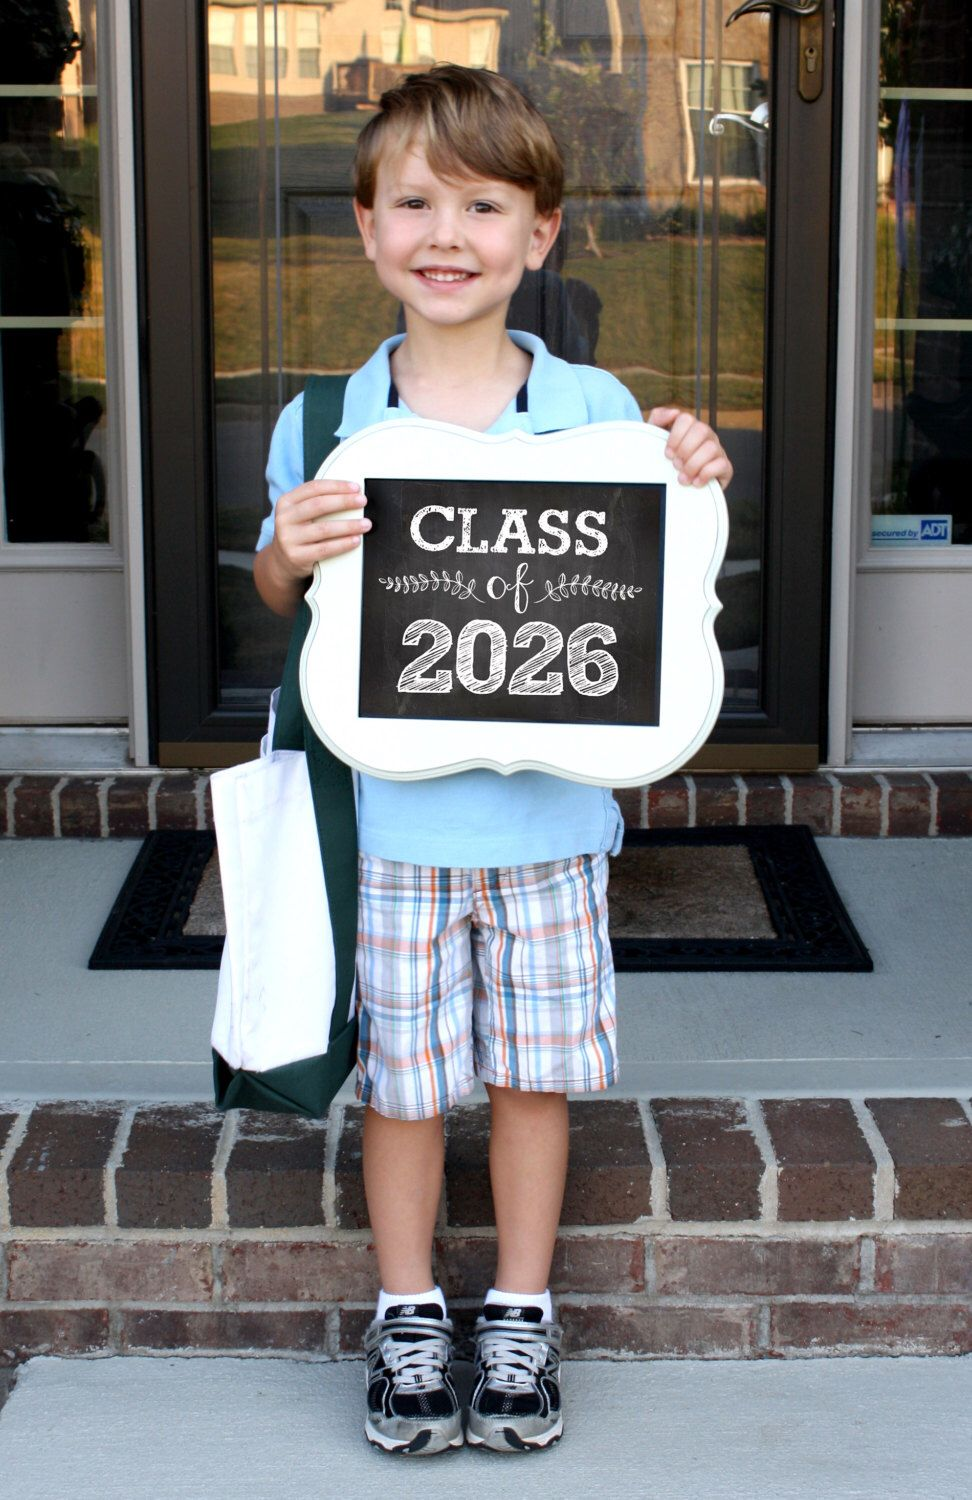 Class Of 2026 Back To School Teacher Signs First Day Of School